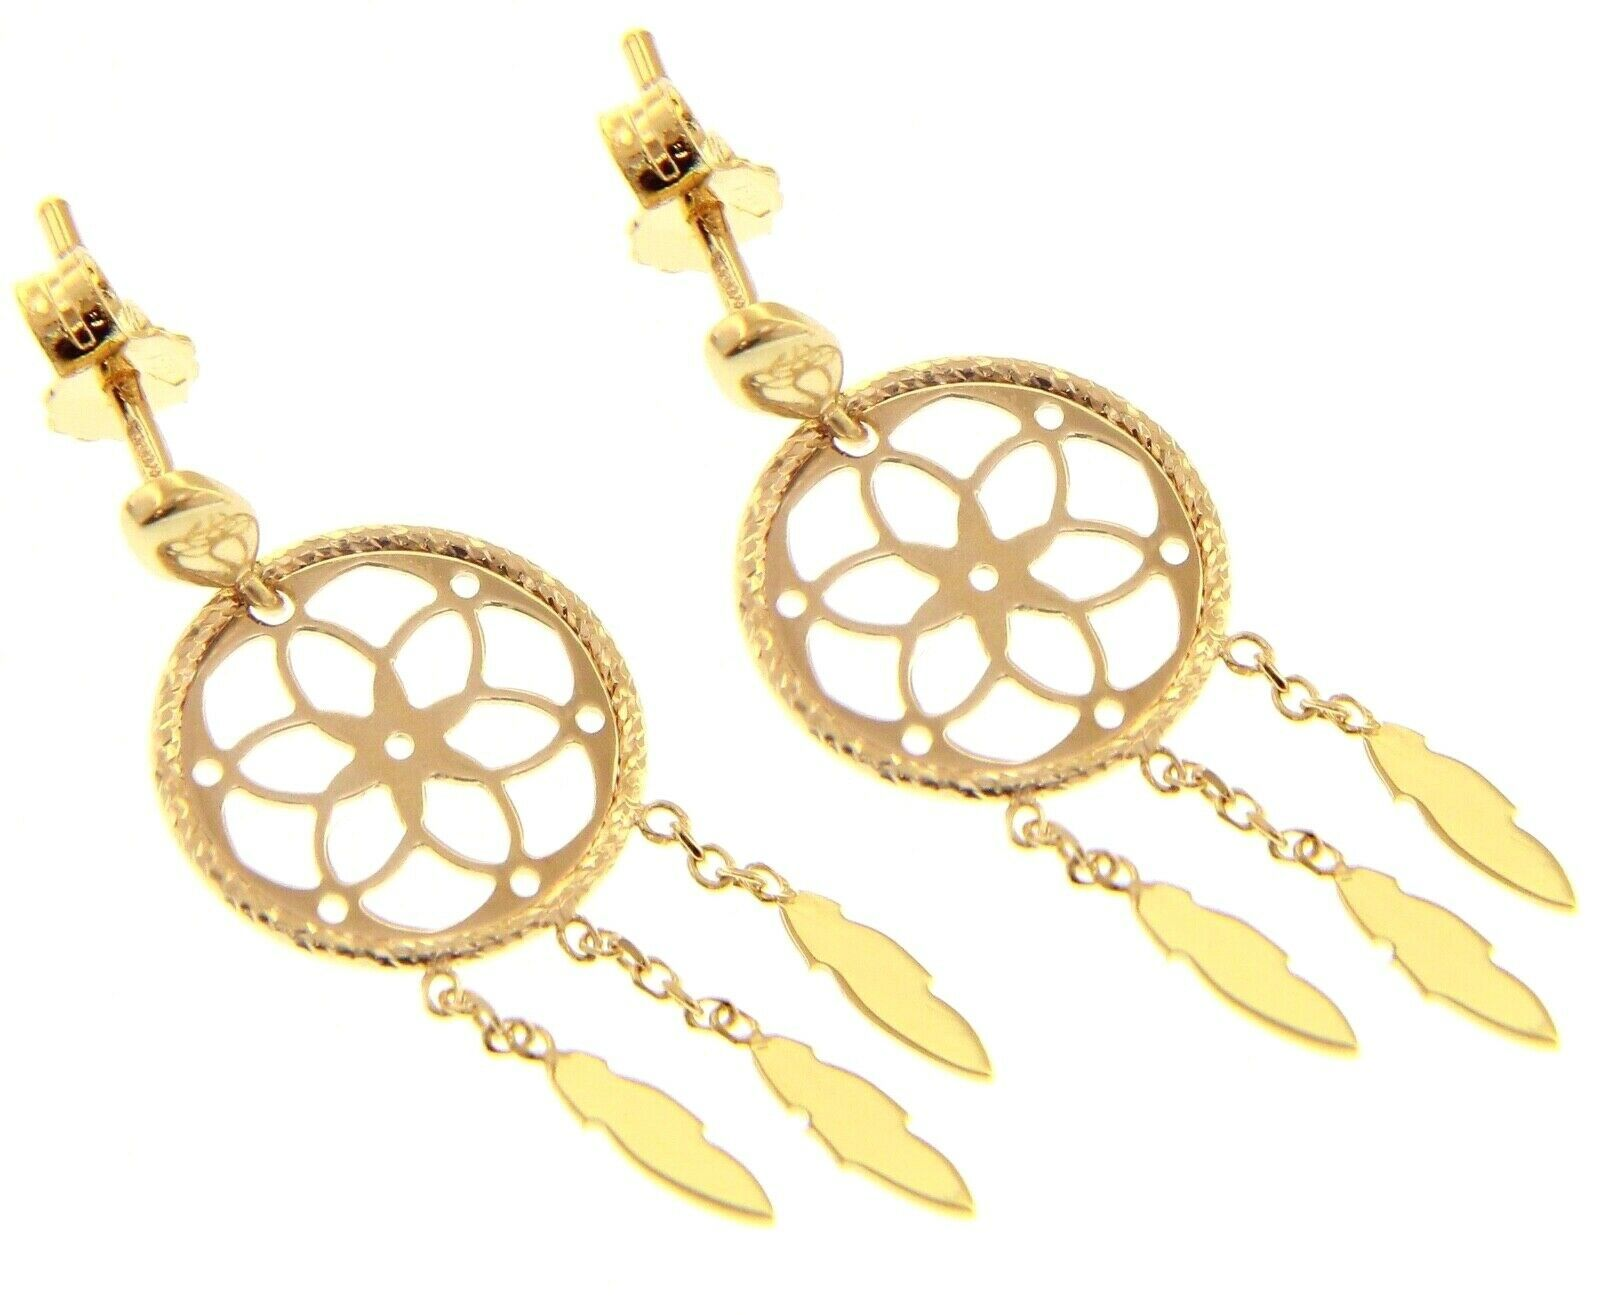 18K YELLOW GOLD DREAMCATCHER PENDANT EARRINGS, FEATHER, MADE IN ITALY, 32 MM